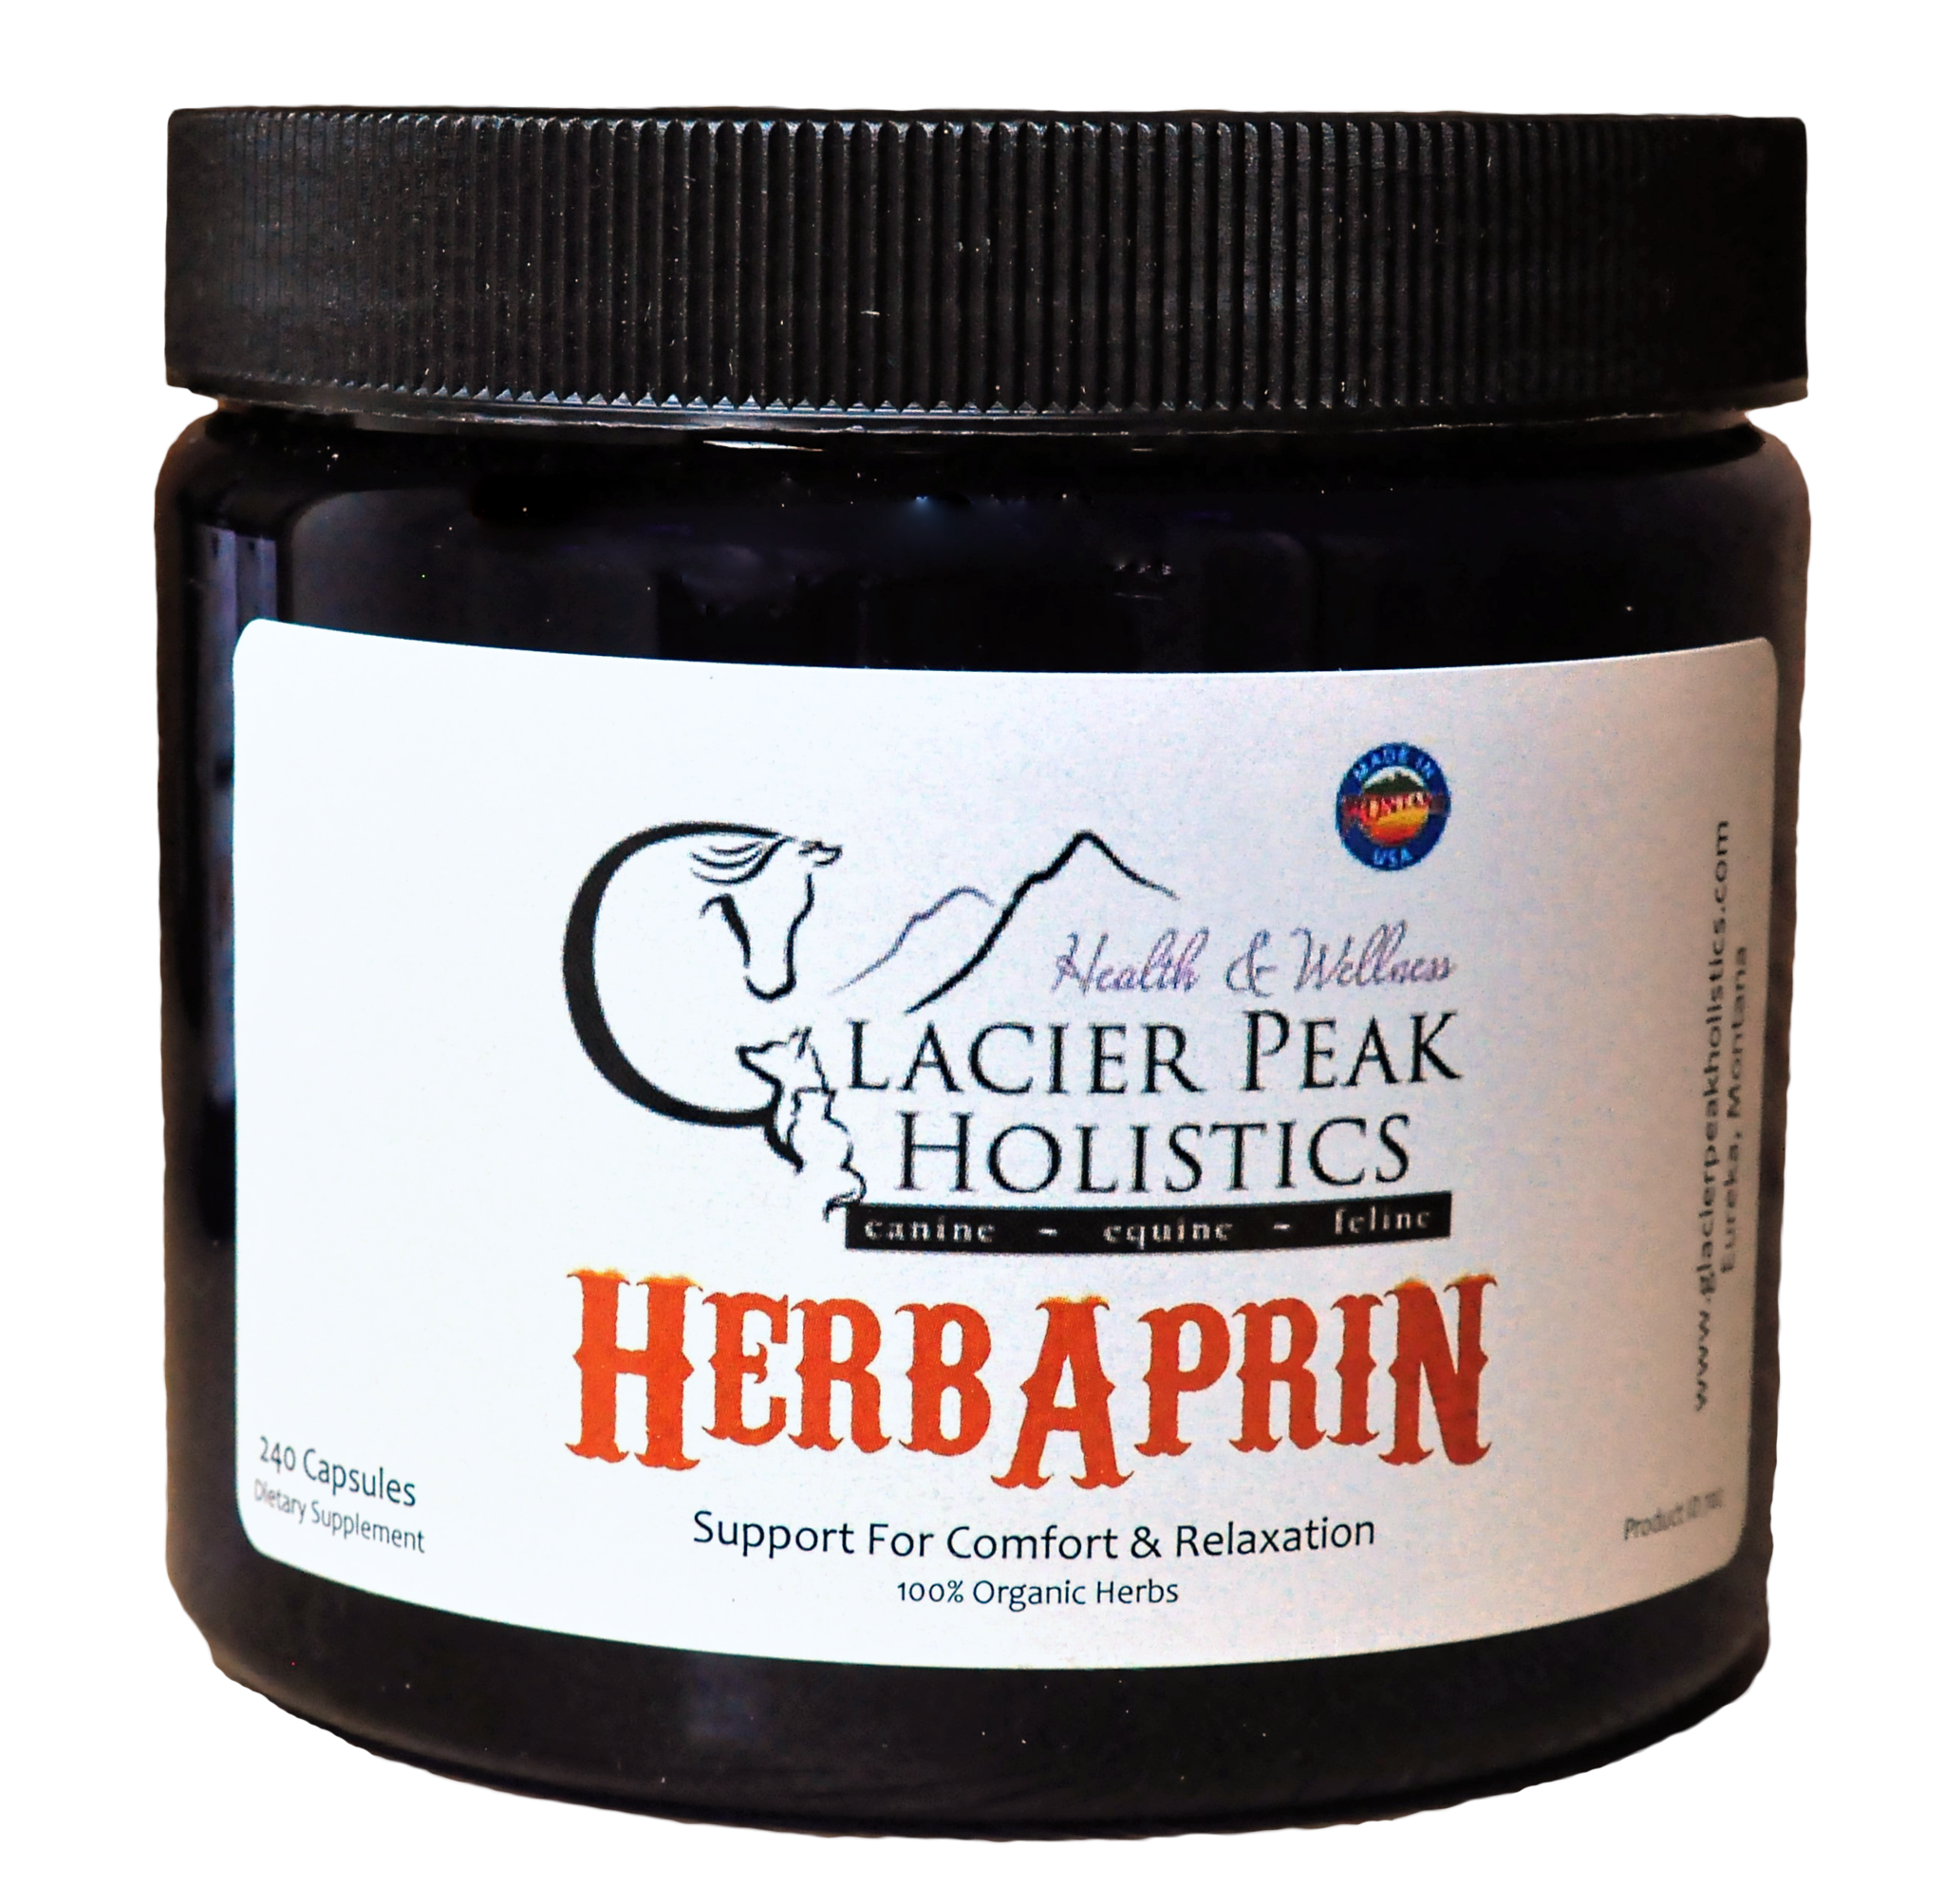 Glacier Peak Holistics HerbAprin Capsules Dog Supplement, 120 Count